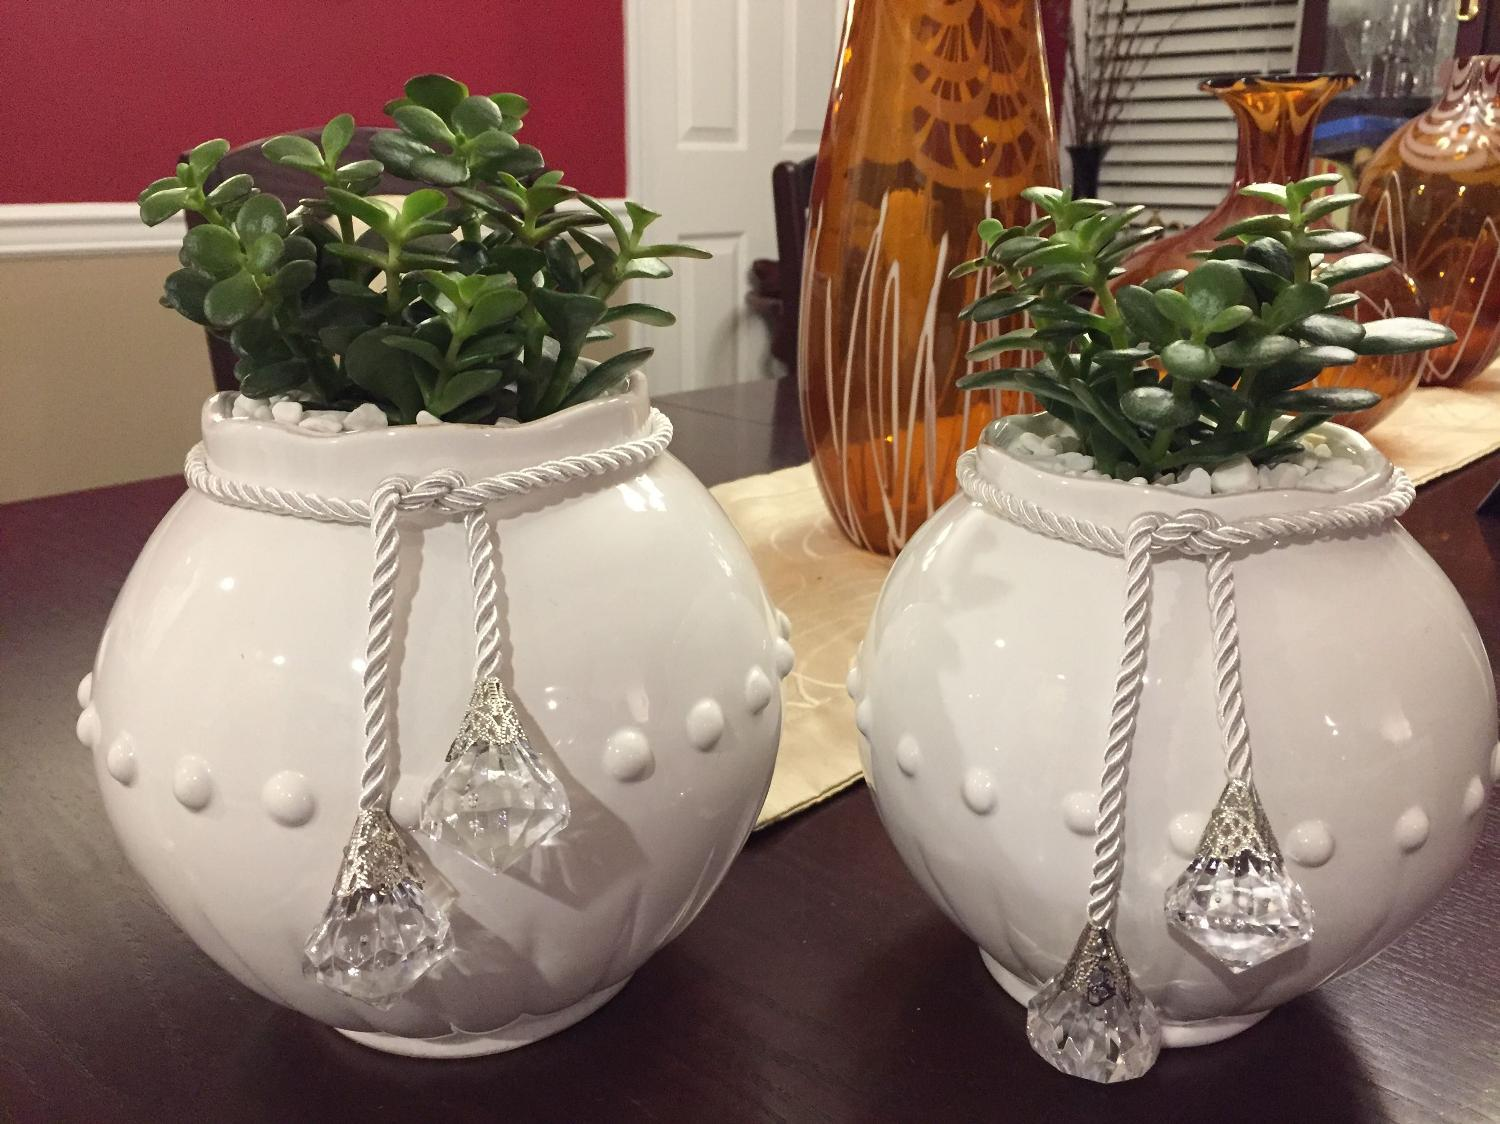 Find More Beautiful Shabby Chic White Ceramic Vase With Easy To Care Jade Succulent Plants With